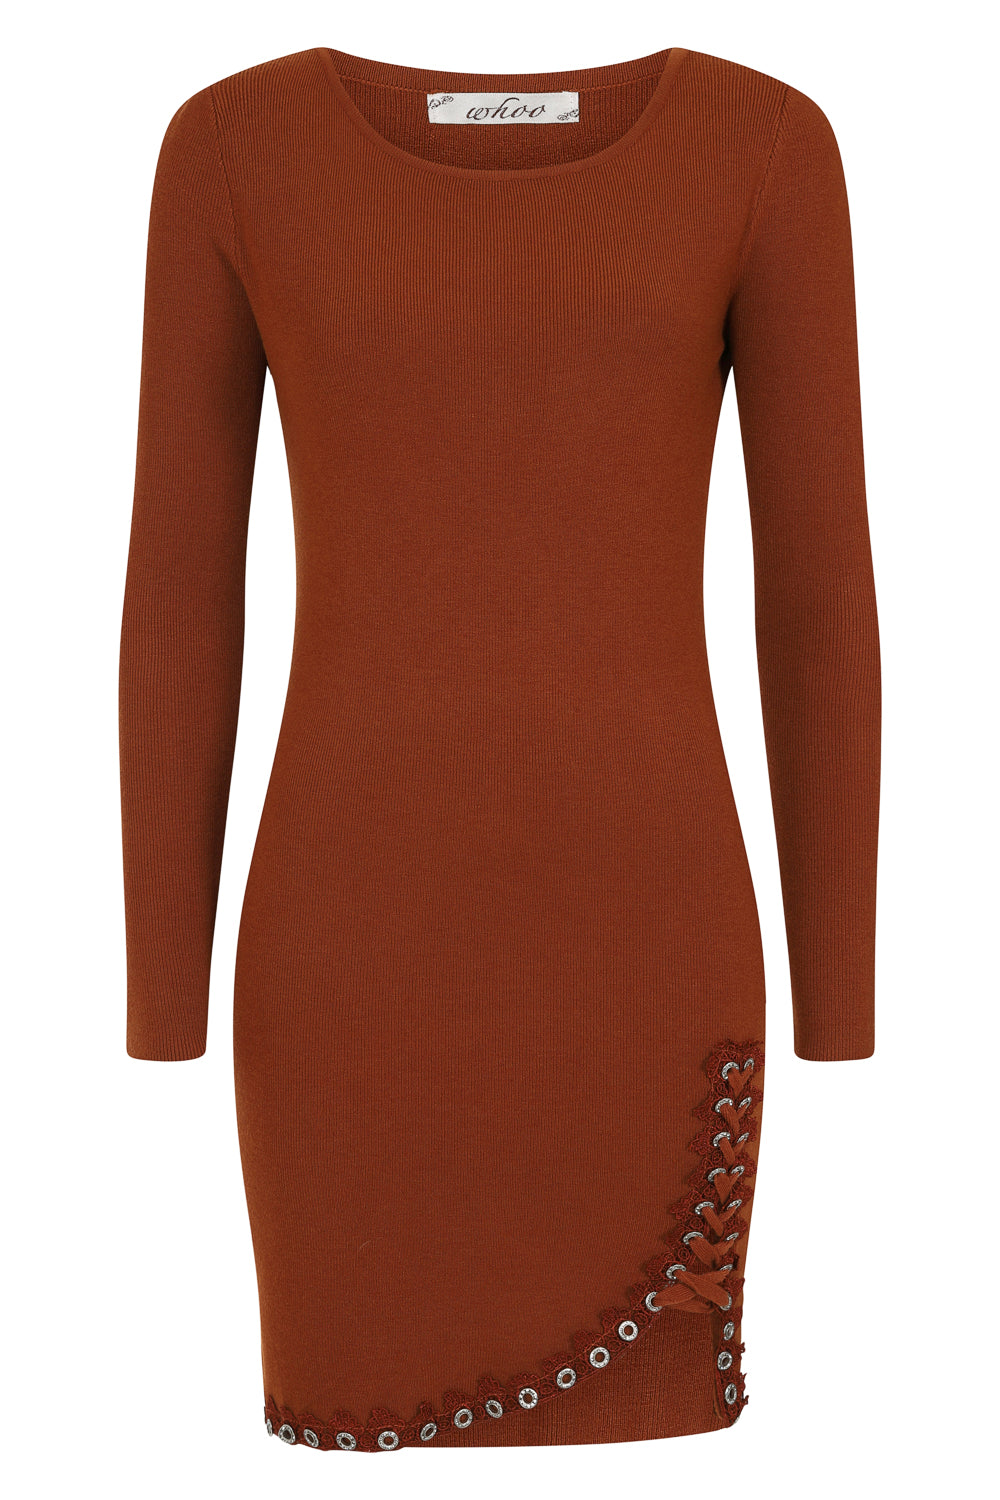 Jasmine Dark Camel Lace Up Diamante Ribbed Knitted Long Sleeve Mini Slit Dress